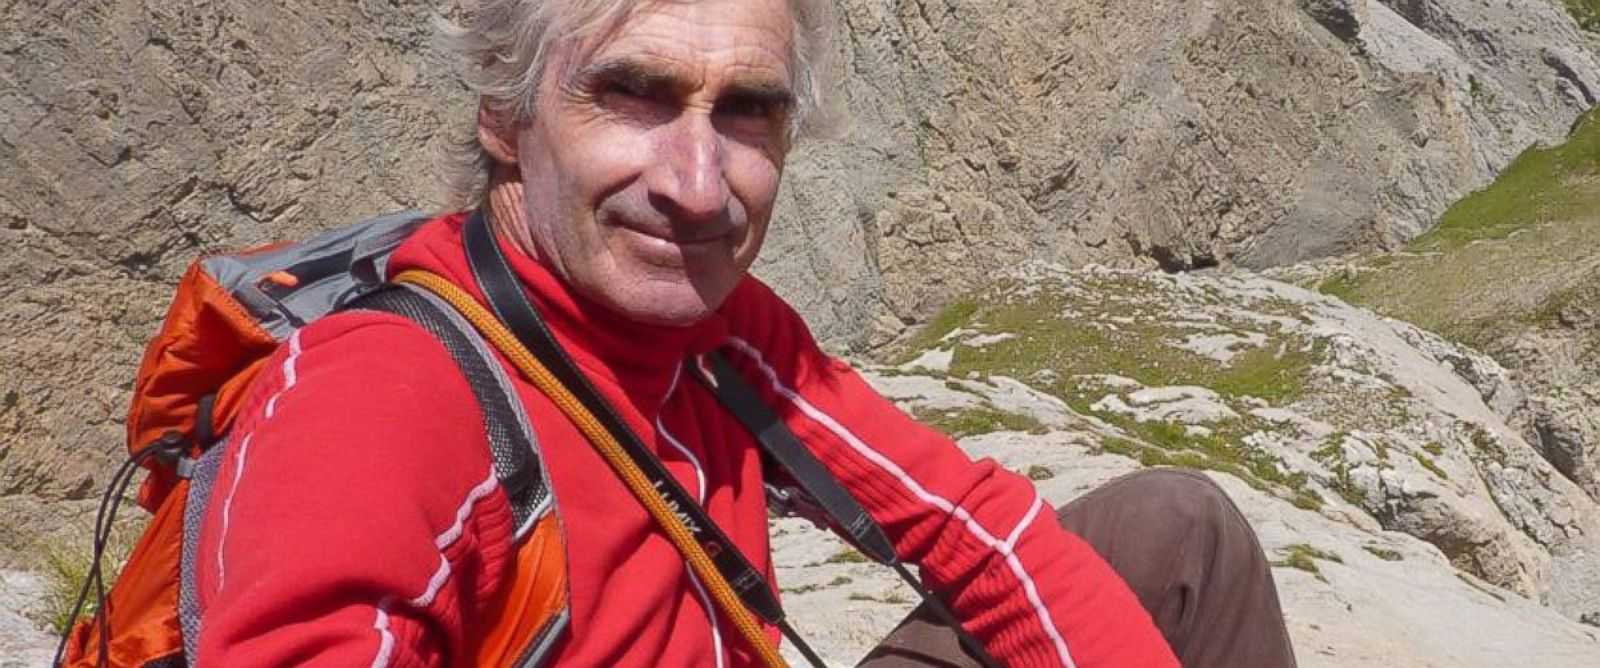 PHOTO: French national Herve Gourdel, shown in this Facebook profile picture, is seen in a new video in which masked men who claim to be acting on behalf of ISIS threaten to kill him over French actions in Iraq.